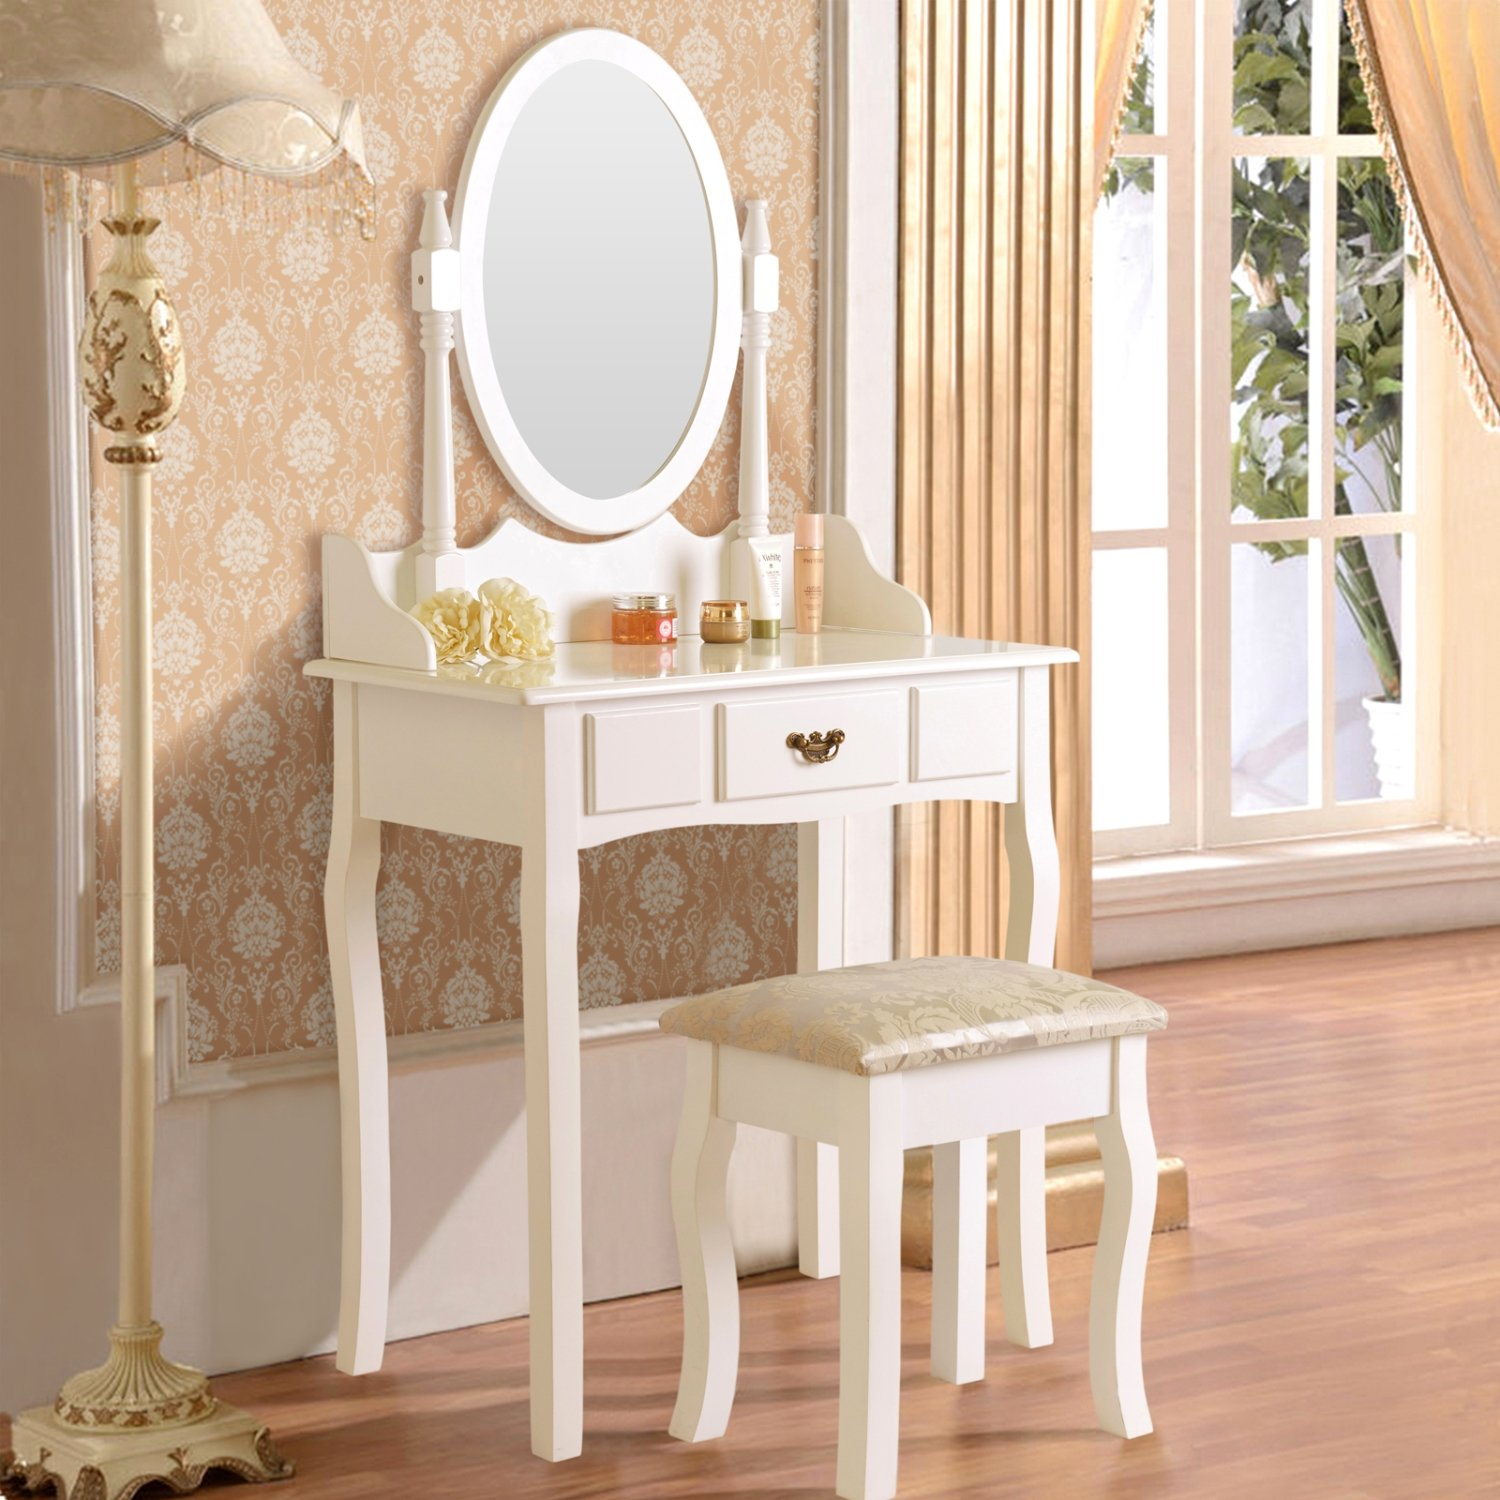 mirror overstock product shipping garden table set with organization drawers wooden today drawer home single fineboard stool makeup free dressing vanity